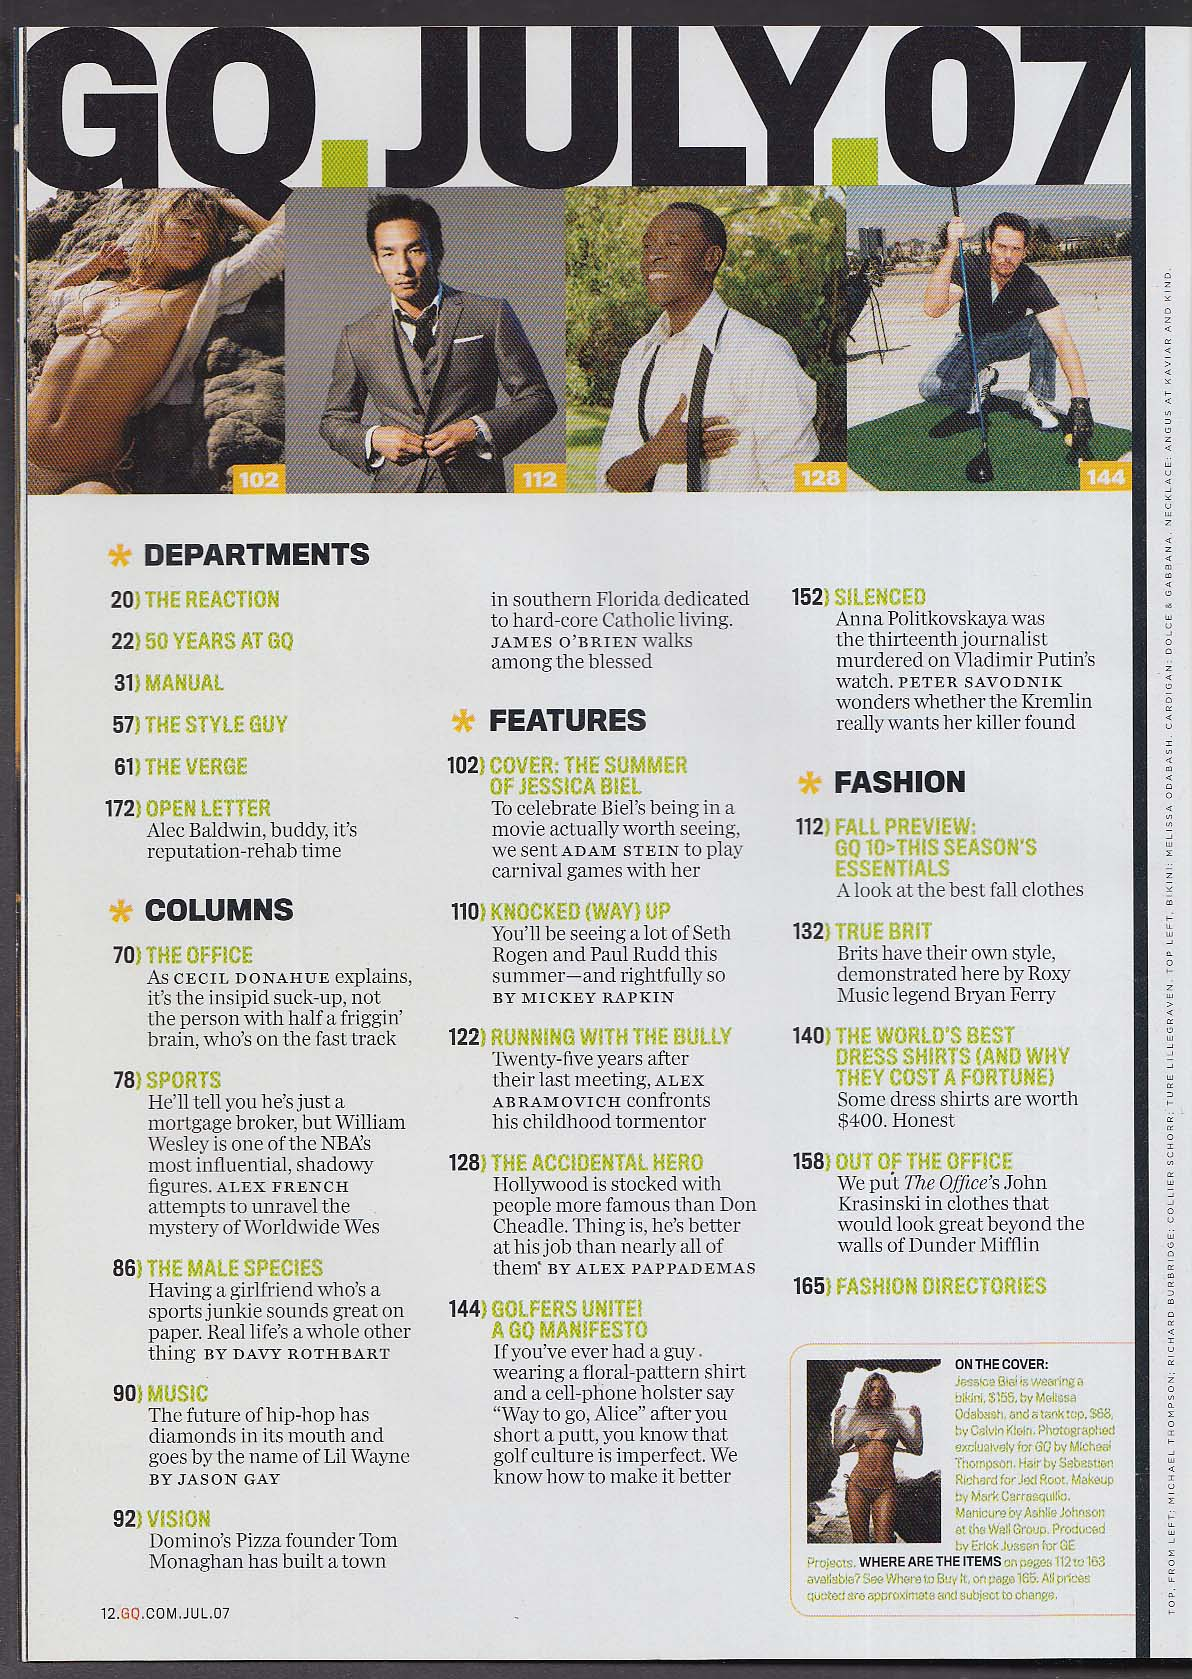 GQ Jessica Biel Lil Wayne Don Cheadle Tom Monaghan William Wesley + 7 2007